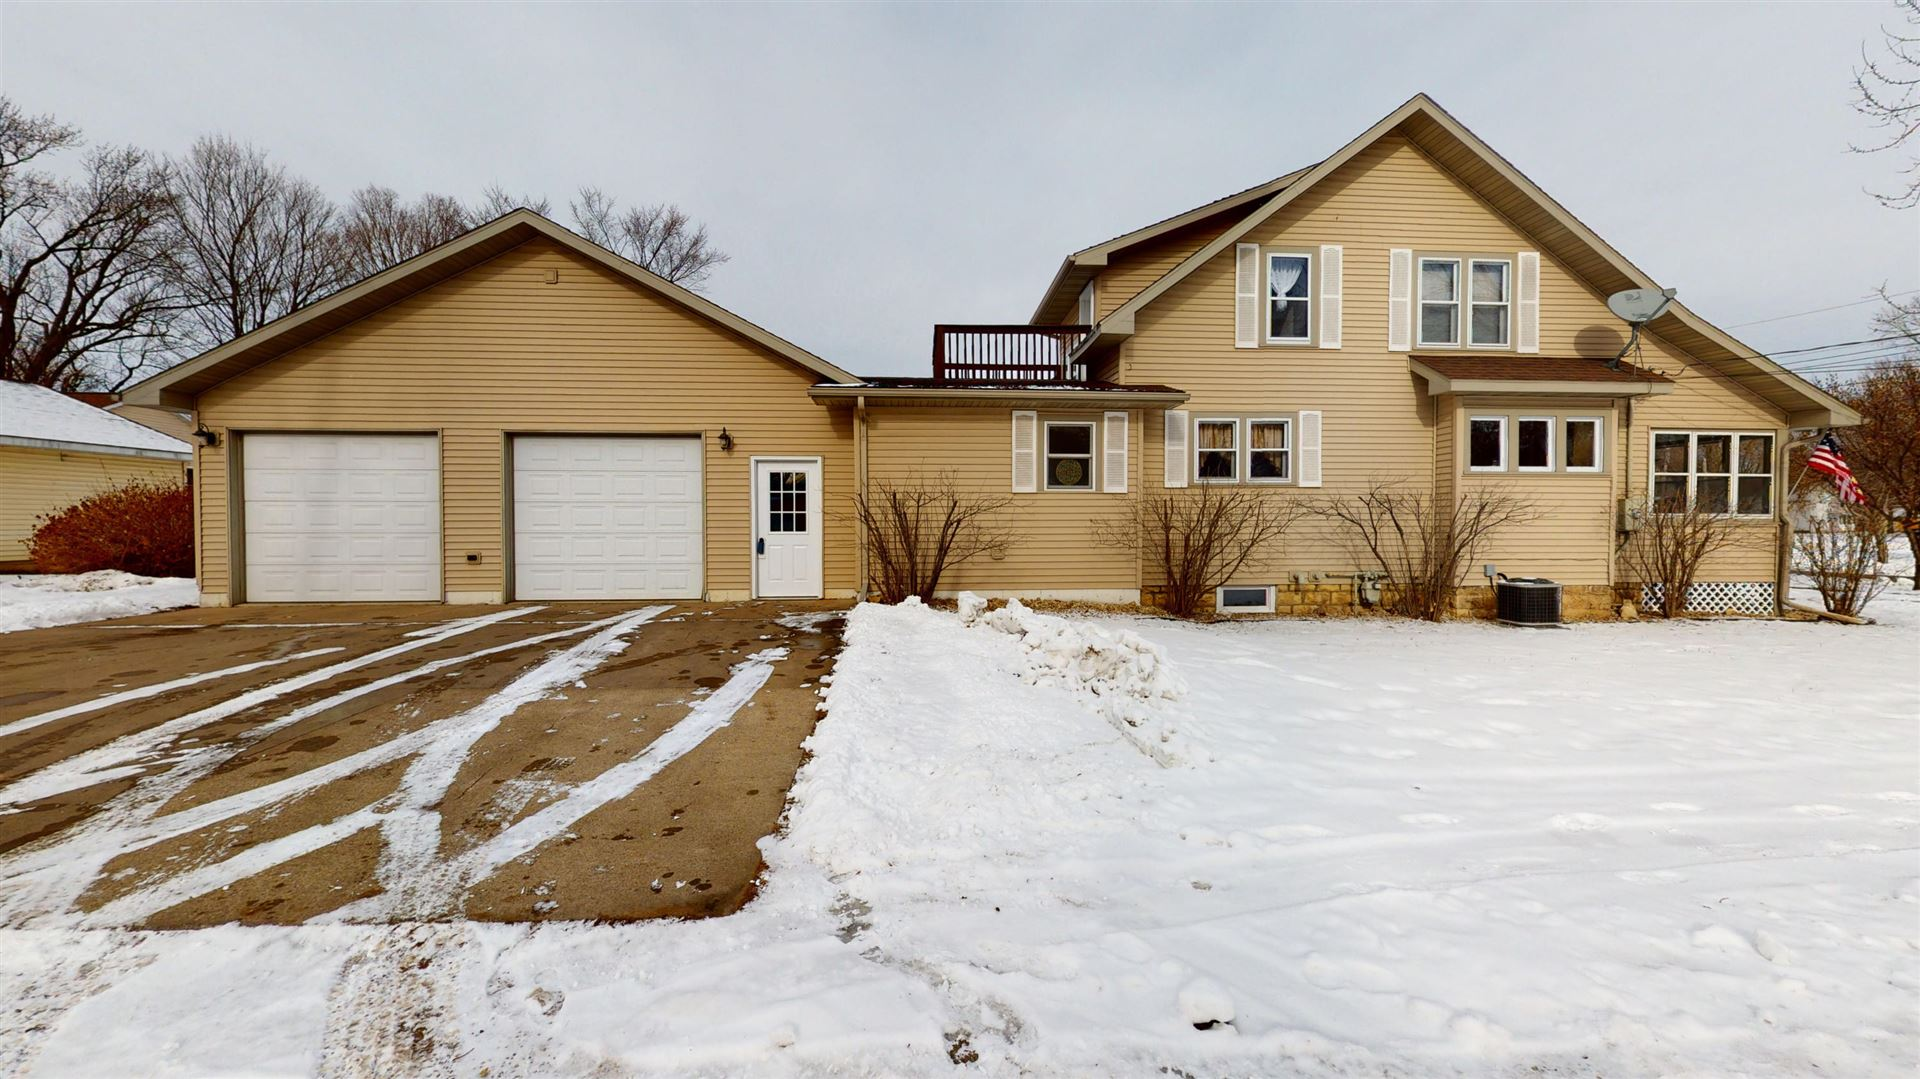 16895 S 9th St, Galesville, WI 54630 - MLS#: 1724772